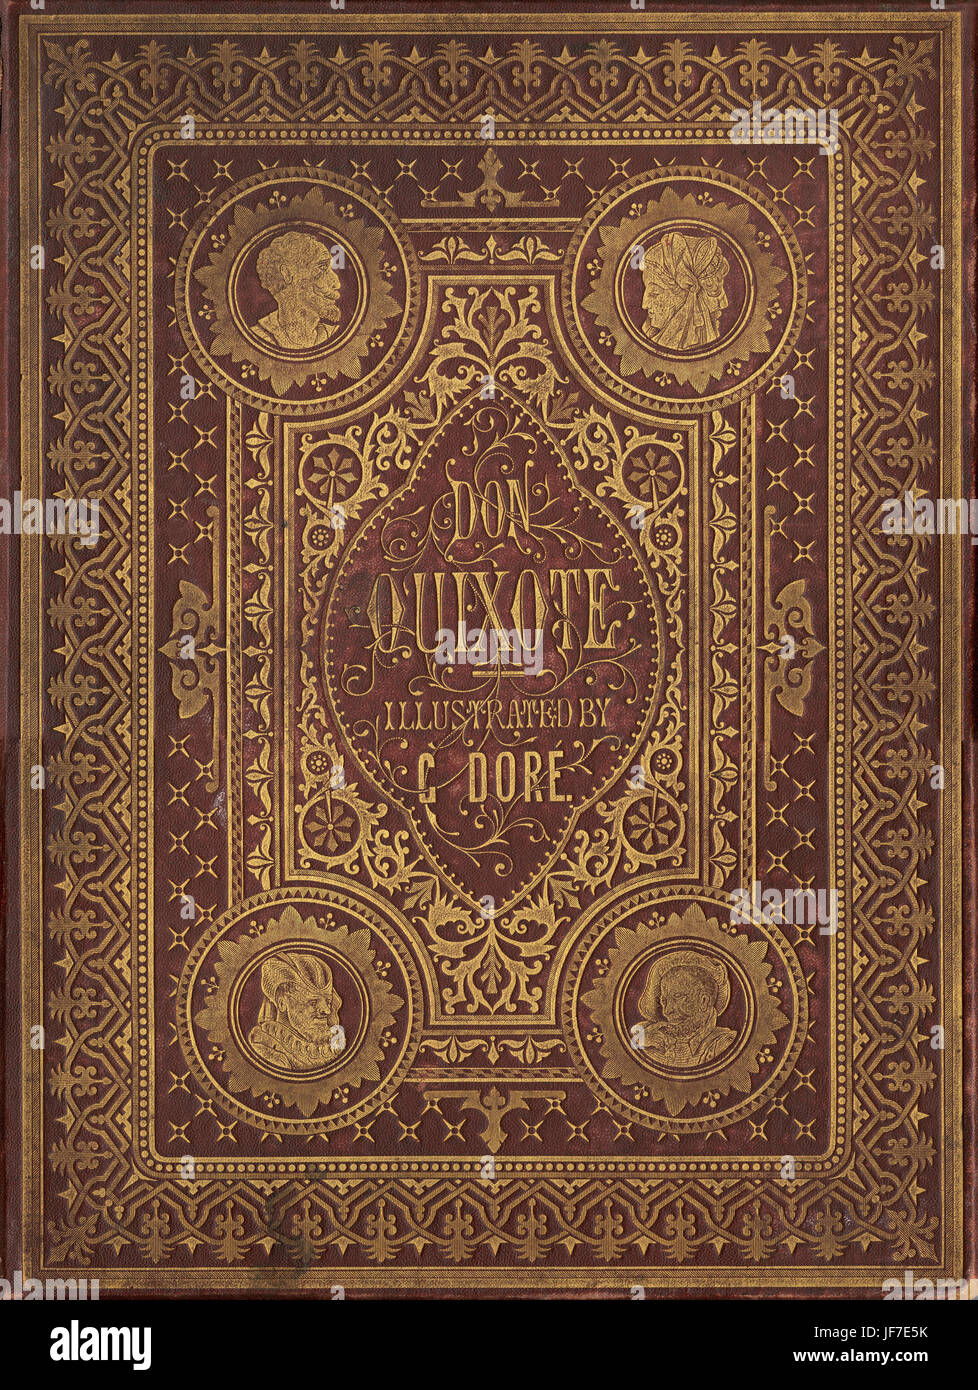 The History of Don Quixote  written by Miguel de Cervantes and illustrated by Gustav Dore 1863.  Book binding Published - Stock Image